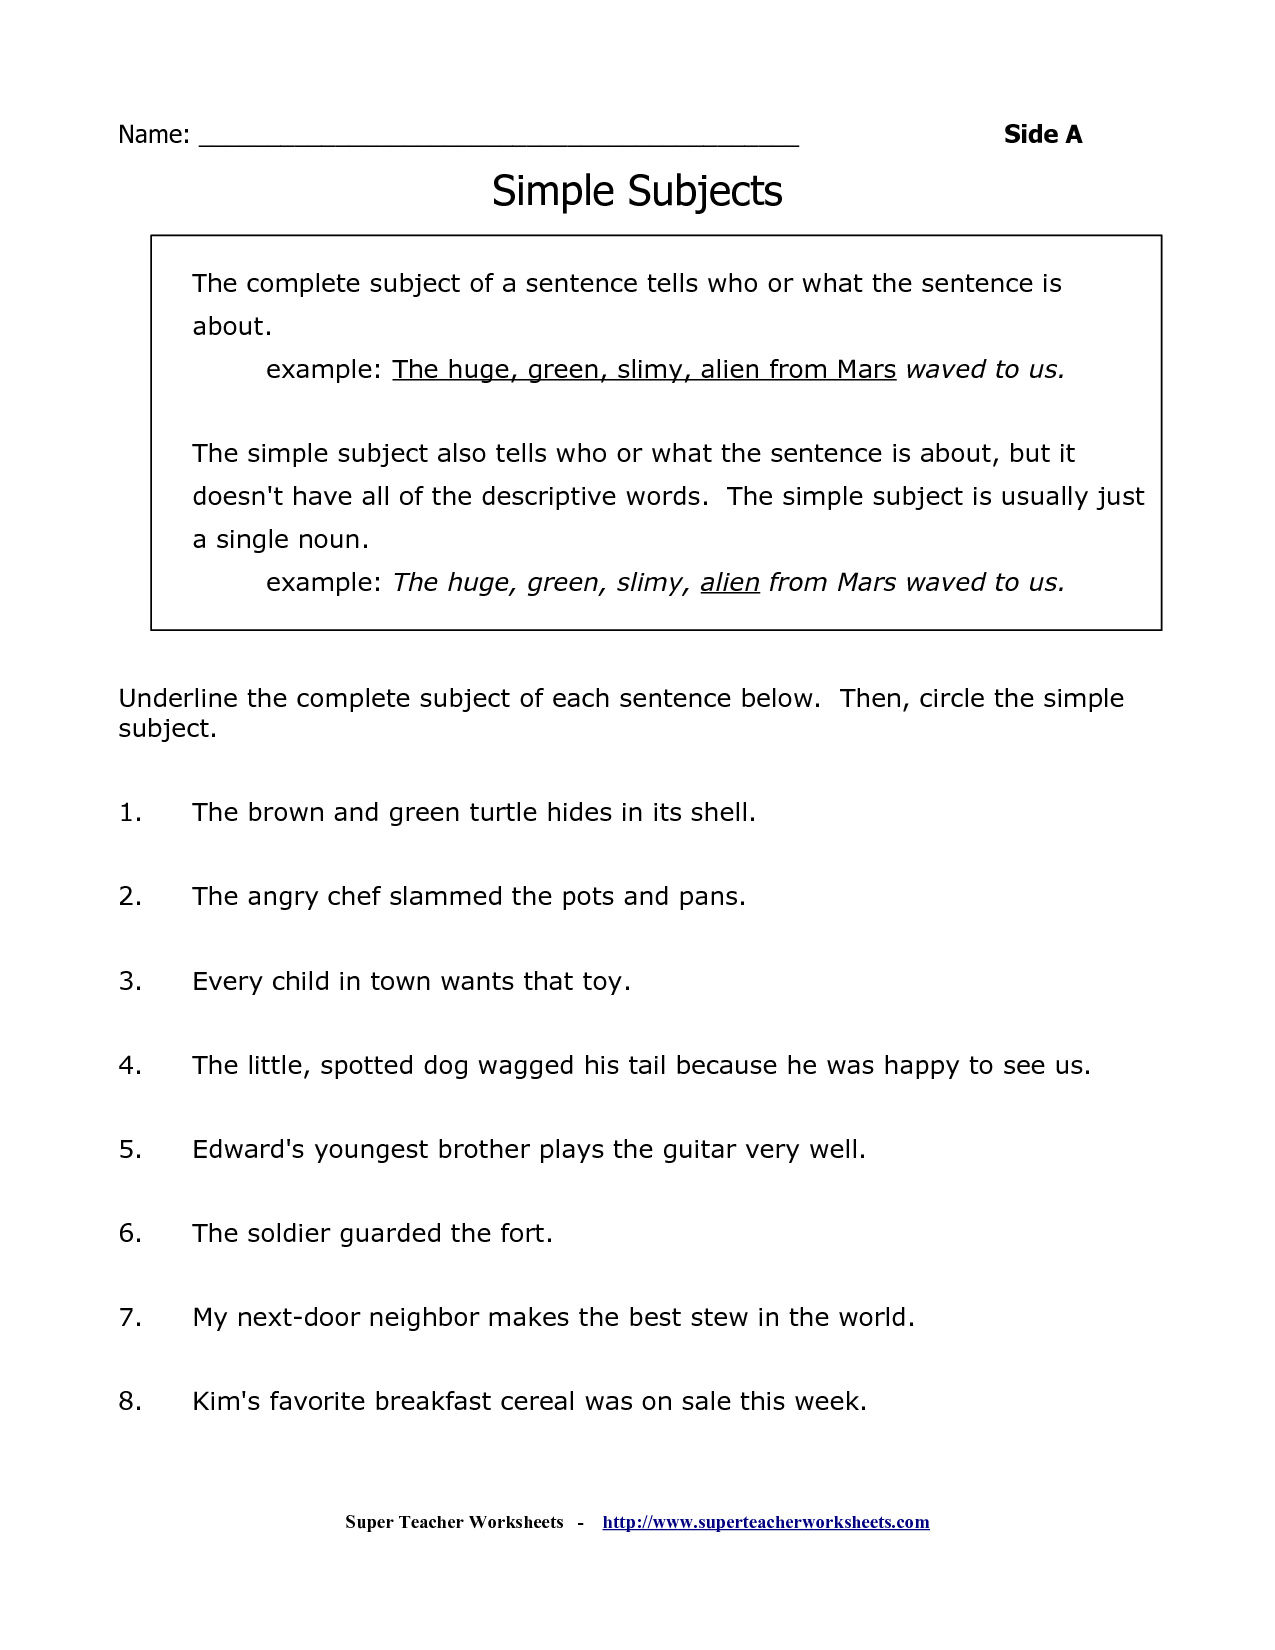 Complete Subject Worksheet Identify